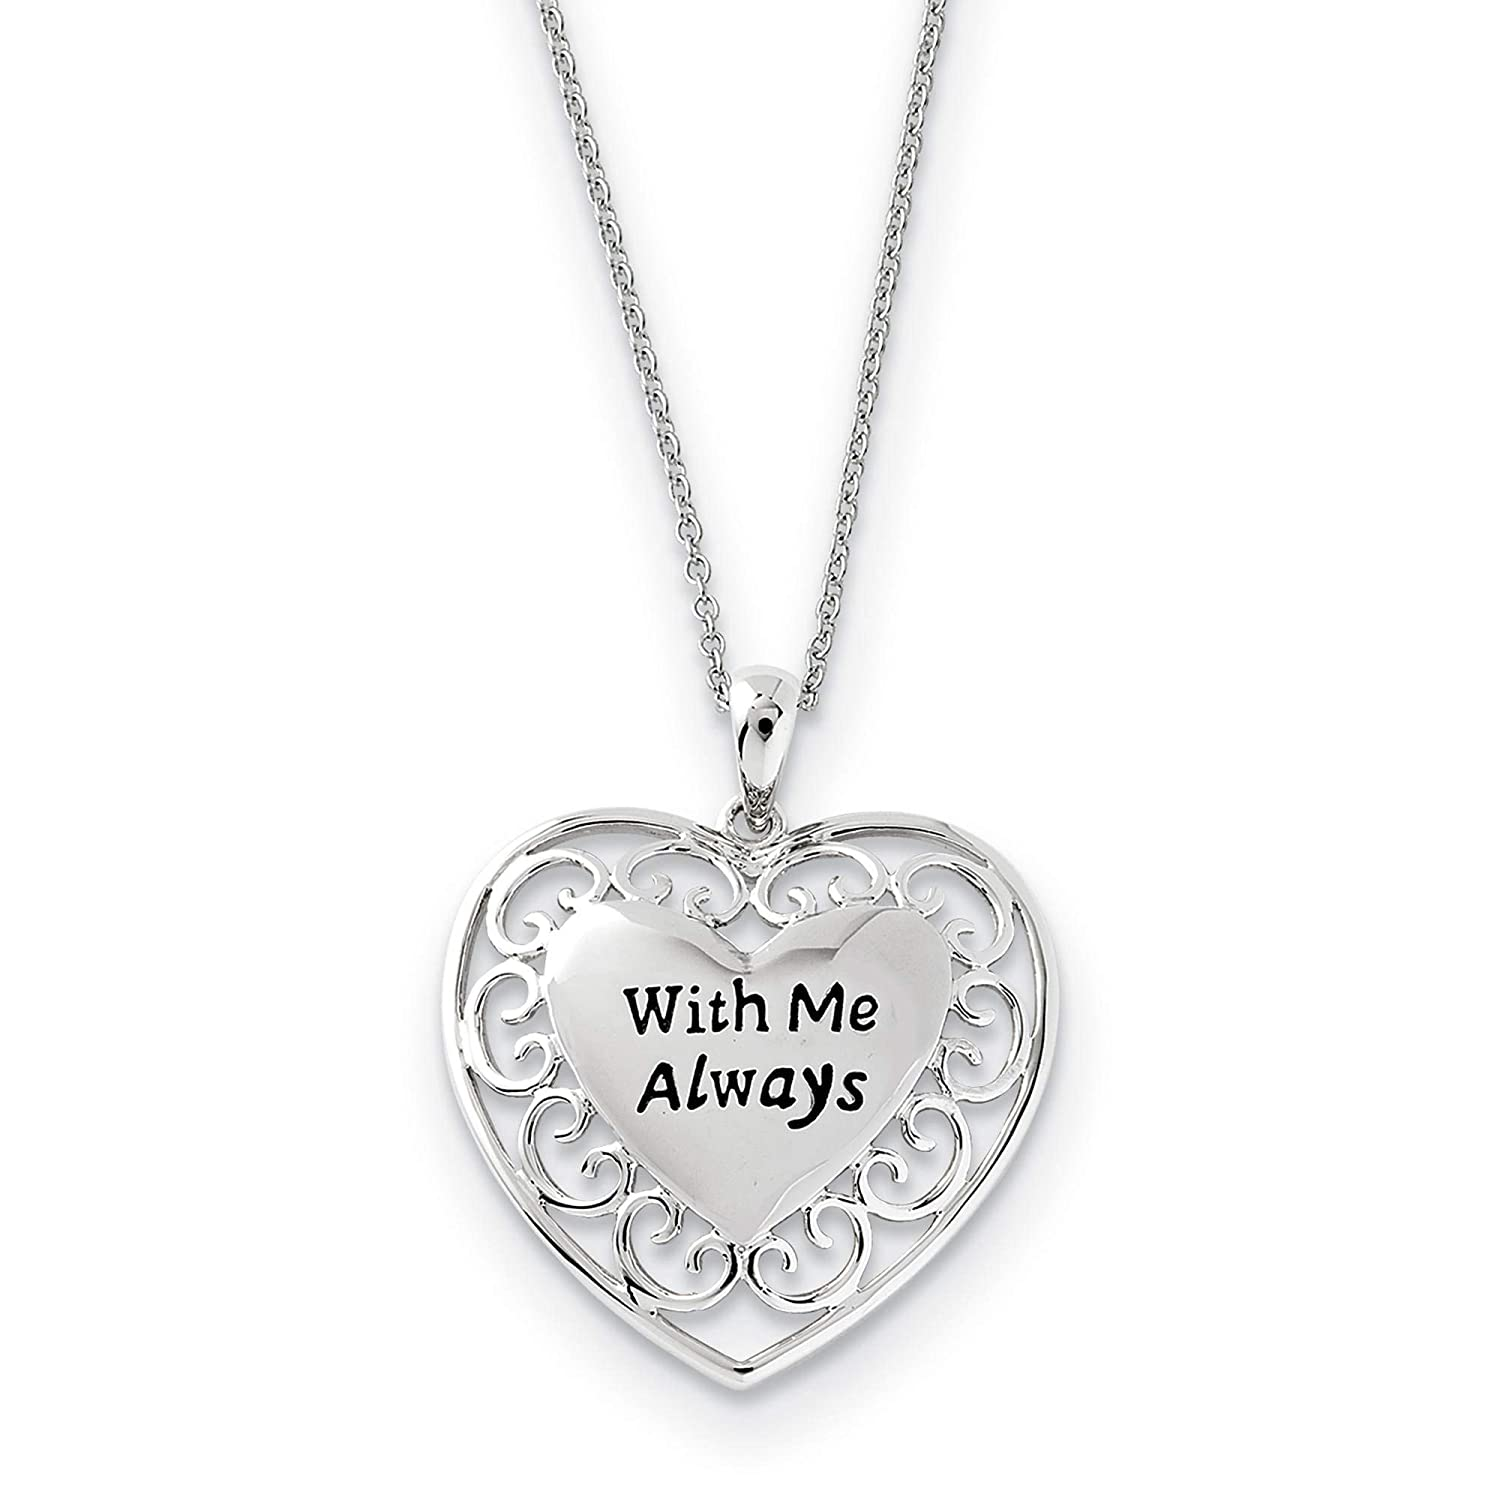 925 Sterling Silver Polished /& Antiqued With Me Always Pendant Necklace 18 by Sentimental Expressions